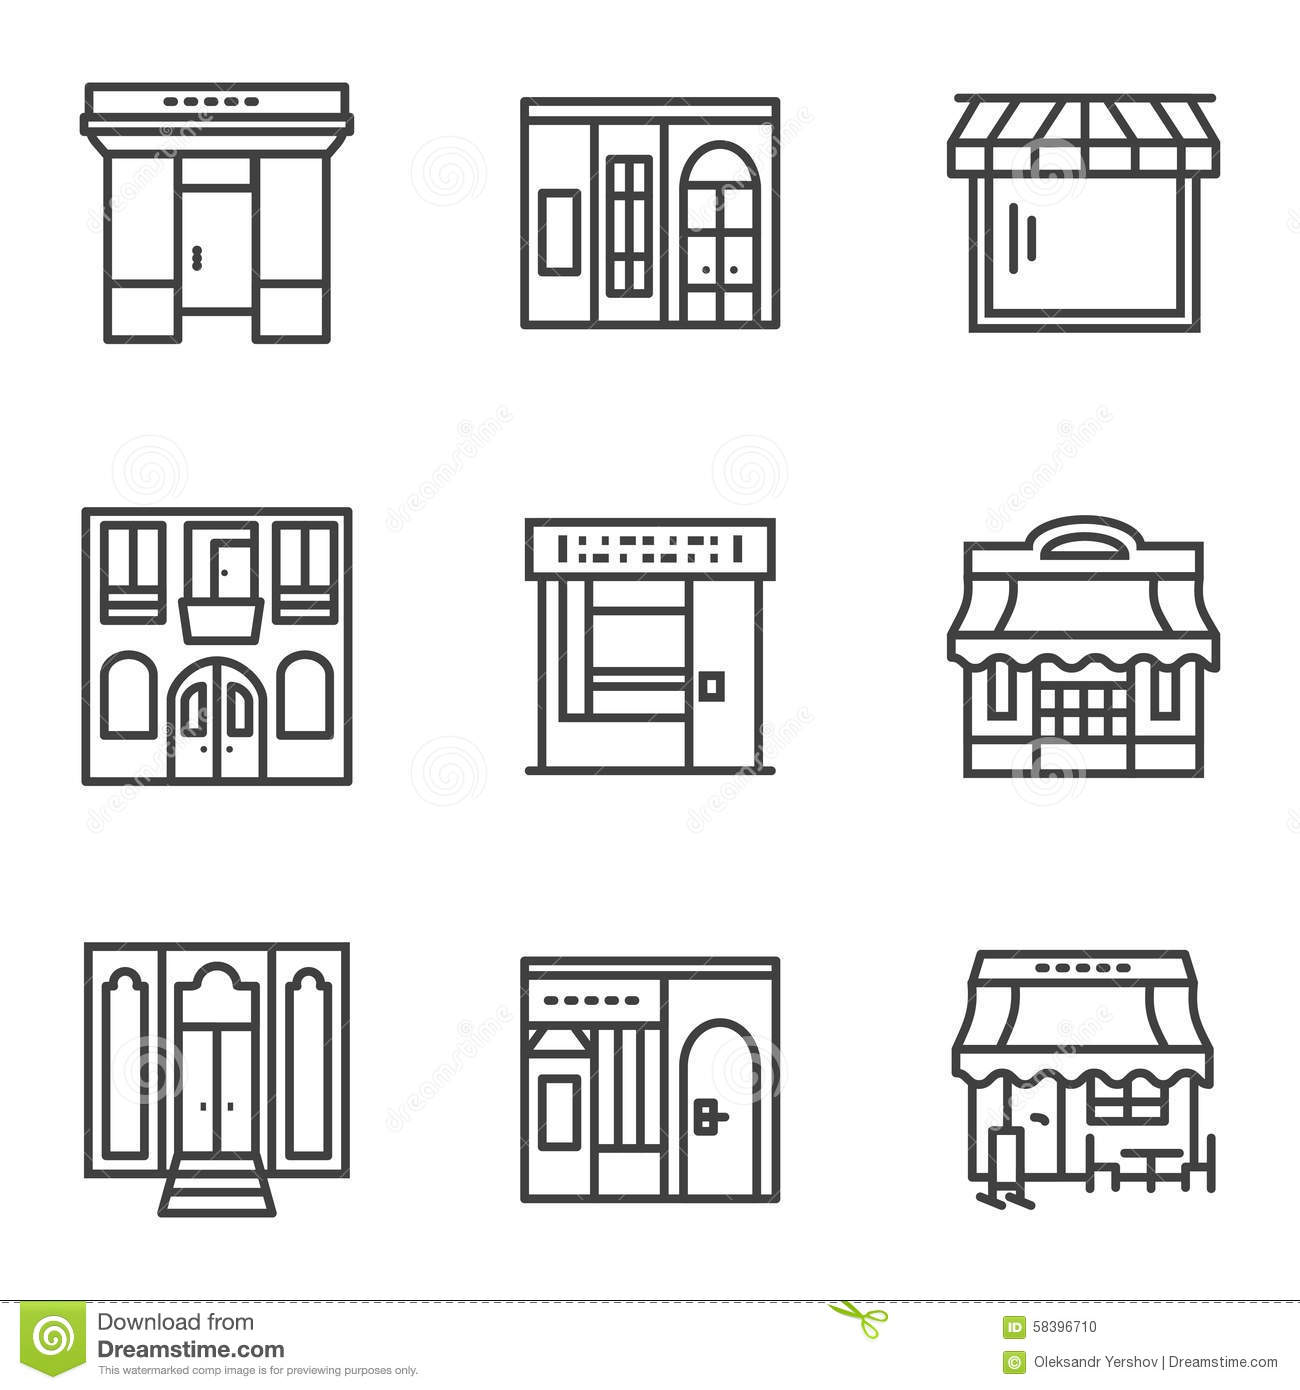 Buildings clipart simple.  collection of restaurant